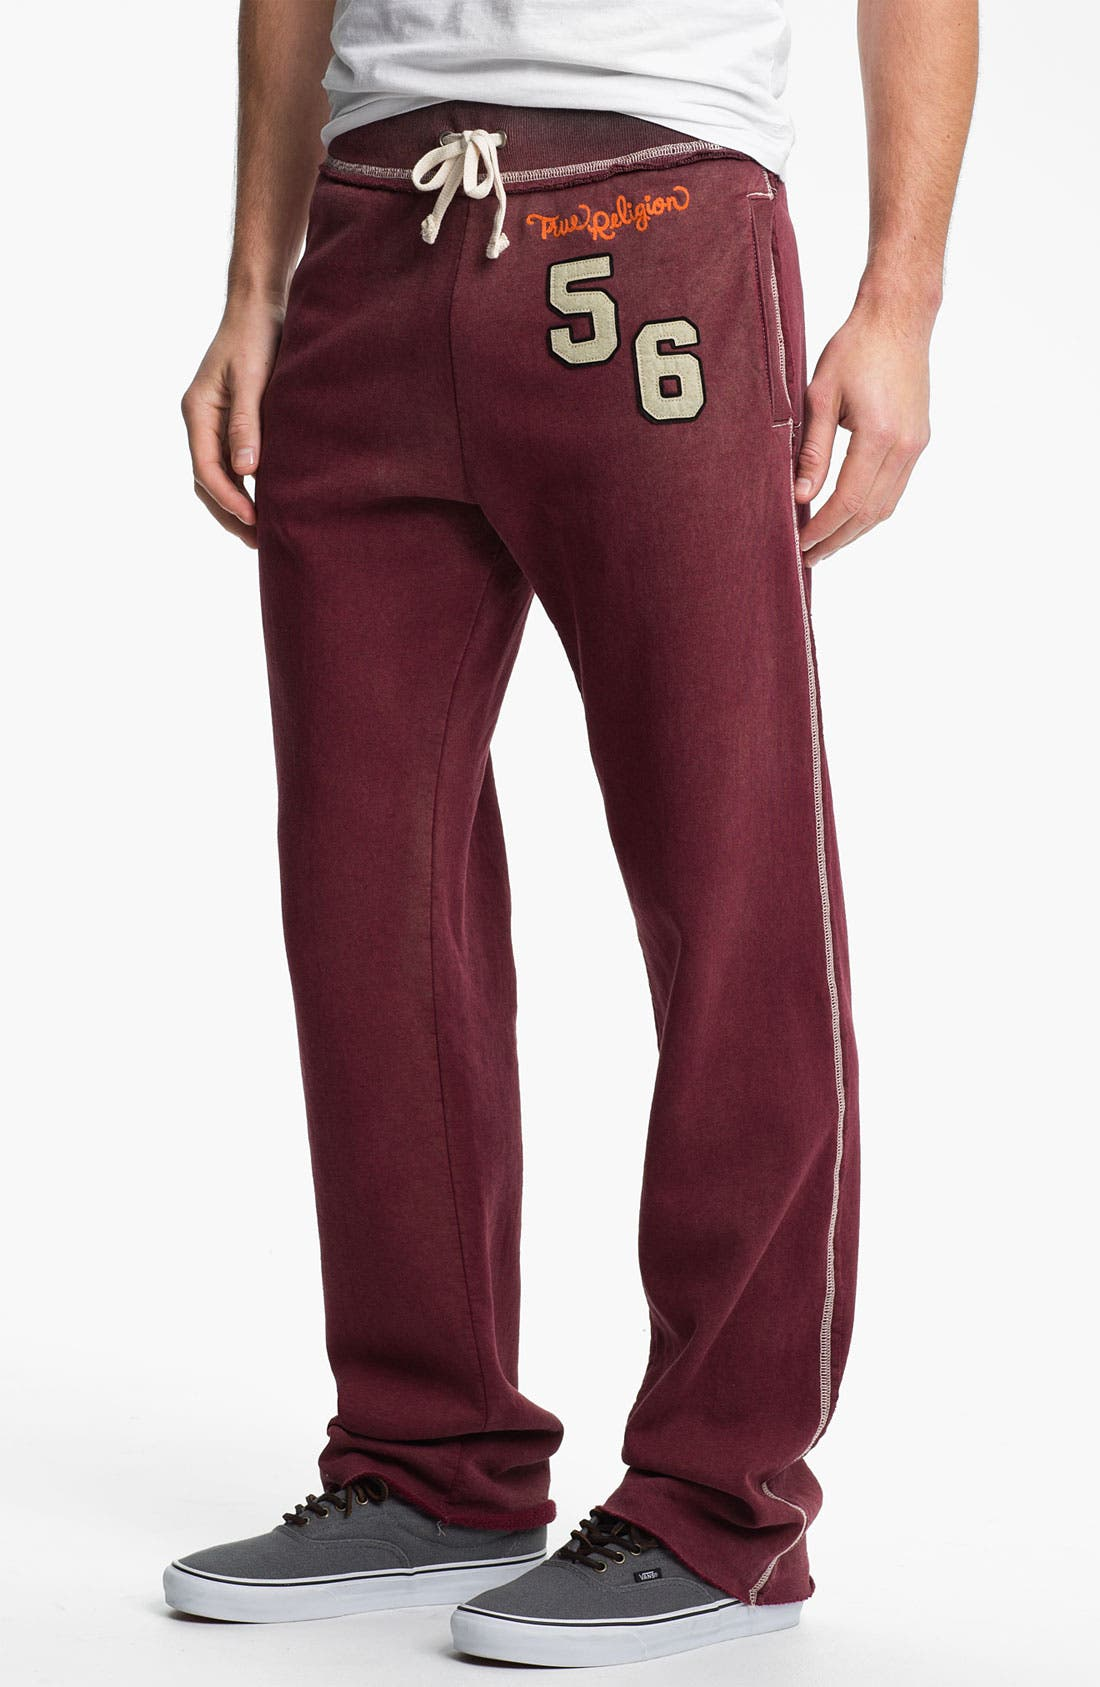 Alternate Image 1 Selected - True Religion Brand Jeans 'Rockwood Tiger' Athletic Pants (Online Exclusive)